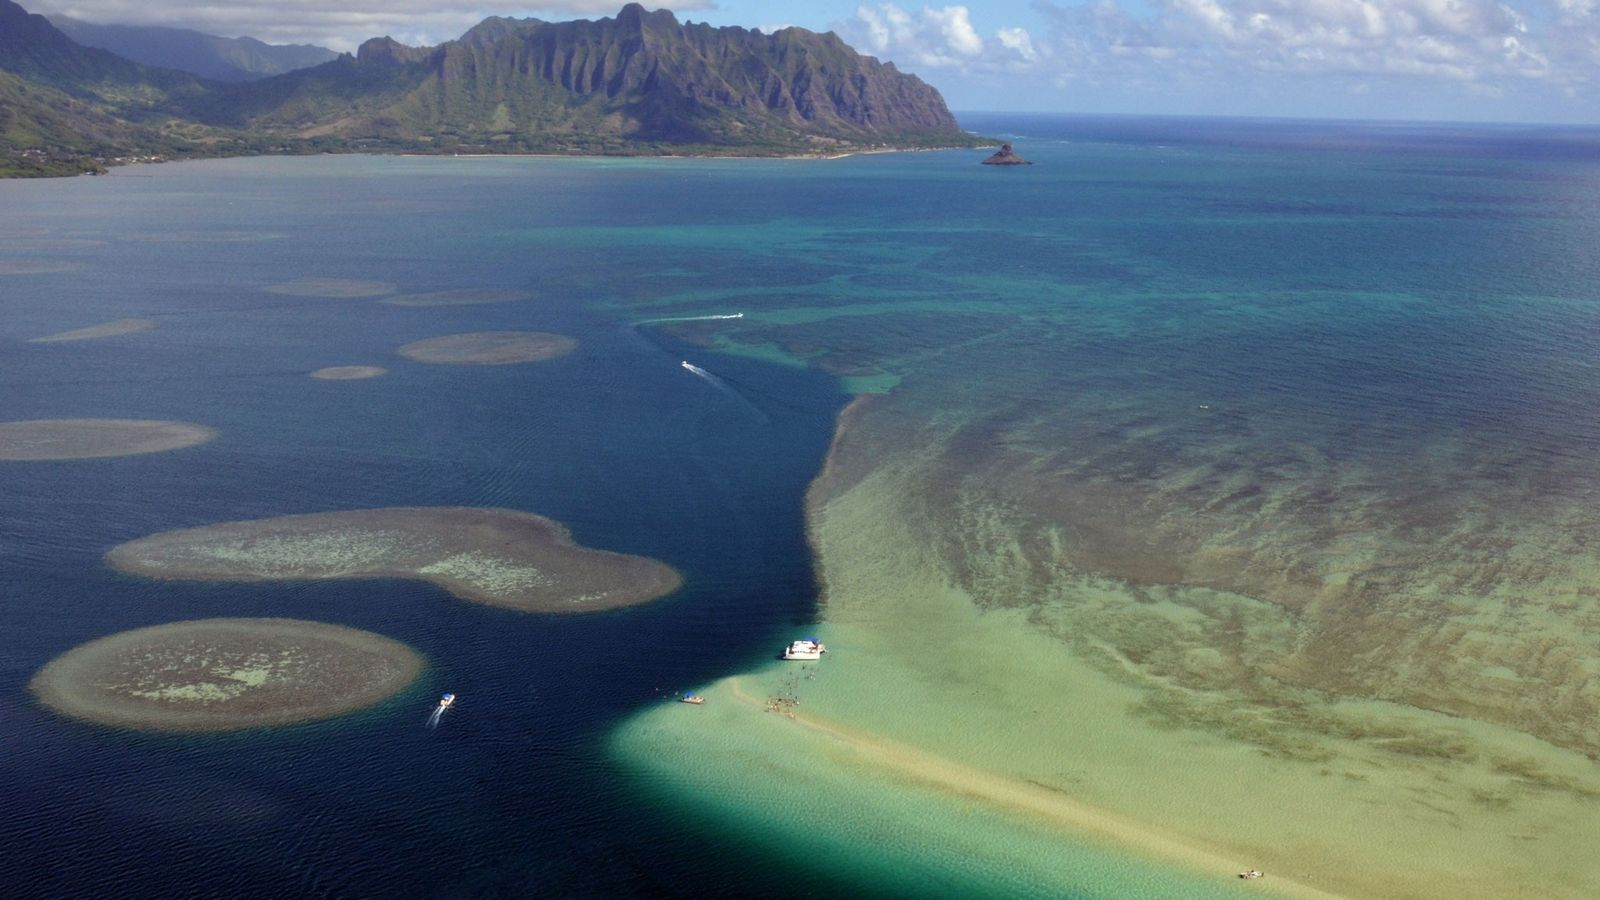 An aerial view of sandbars and coral reefs in Kaneohe Bay, Oahu, Hawaii, USA